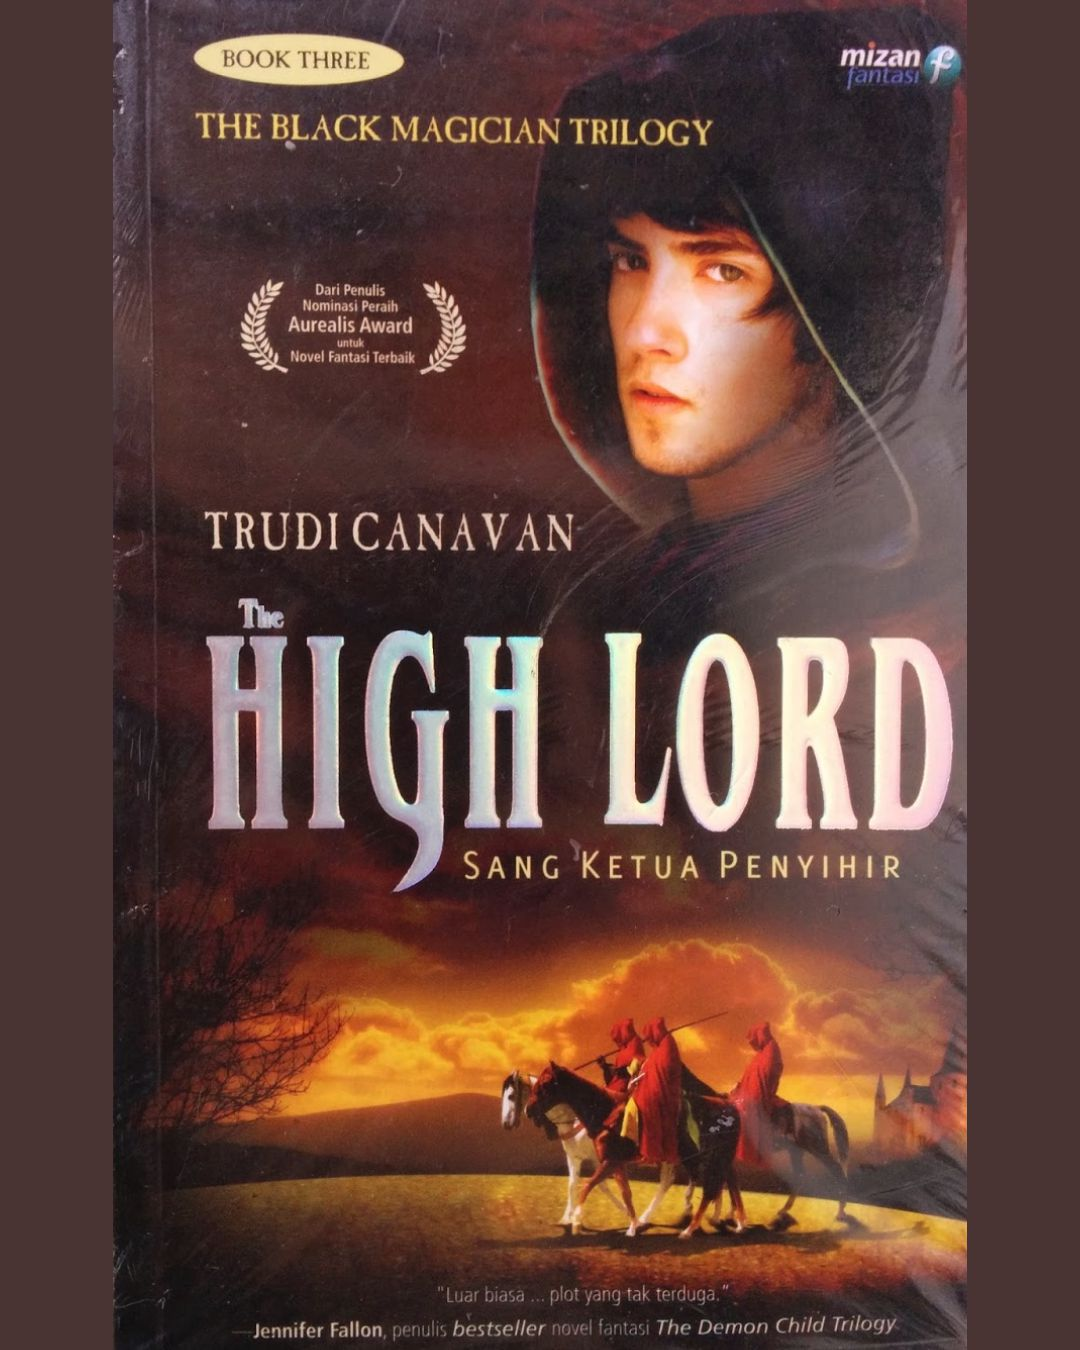 The High Lord: Sang Ketua Penyihir